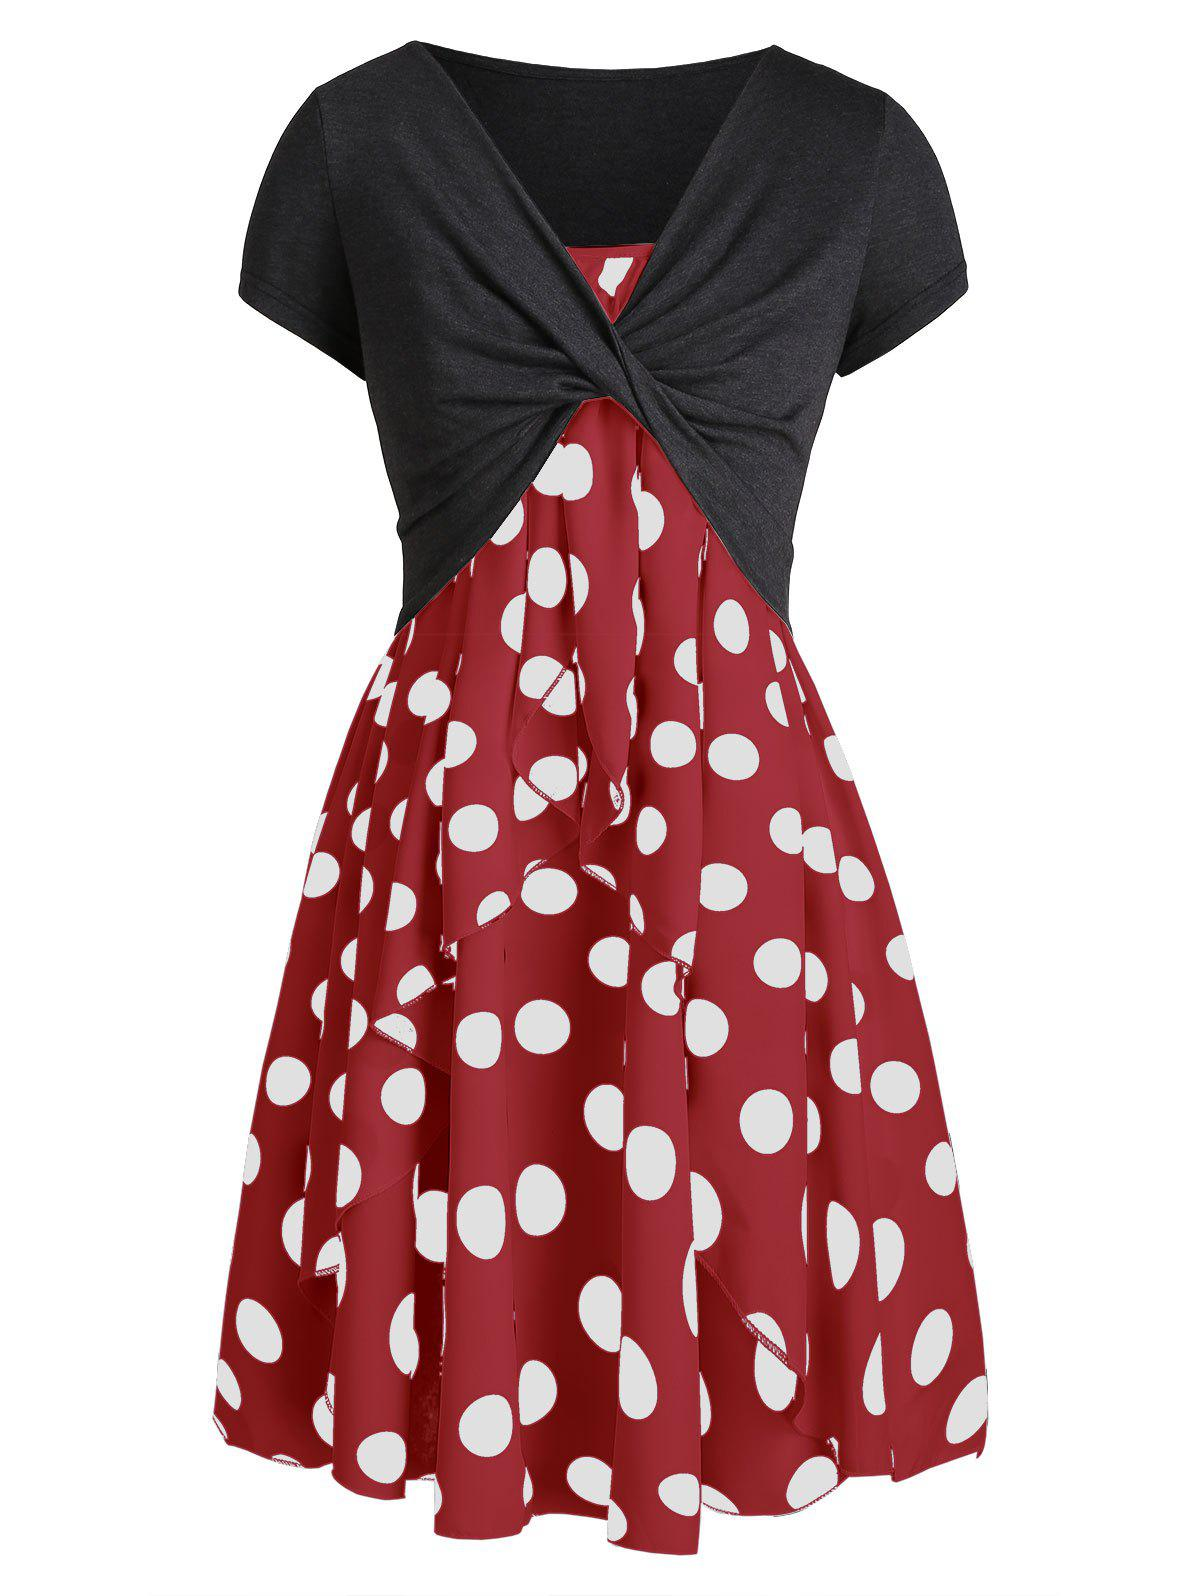 Trendy Cami Polka Dot Dress with Crop T-shirt